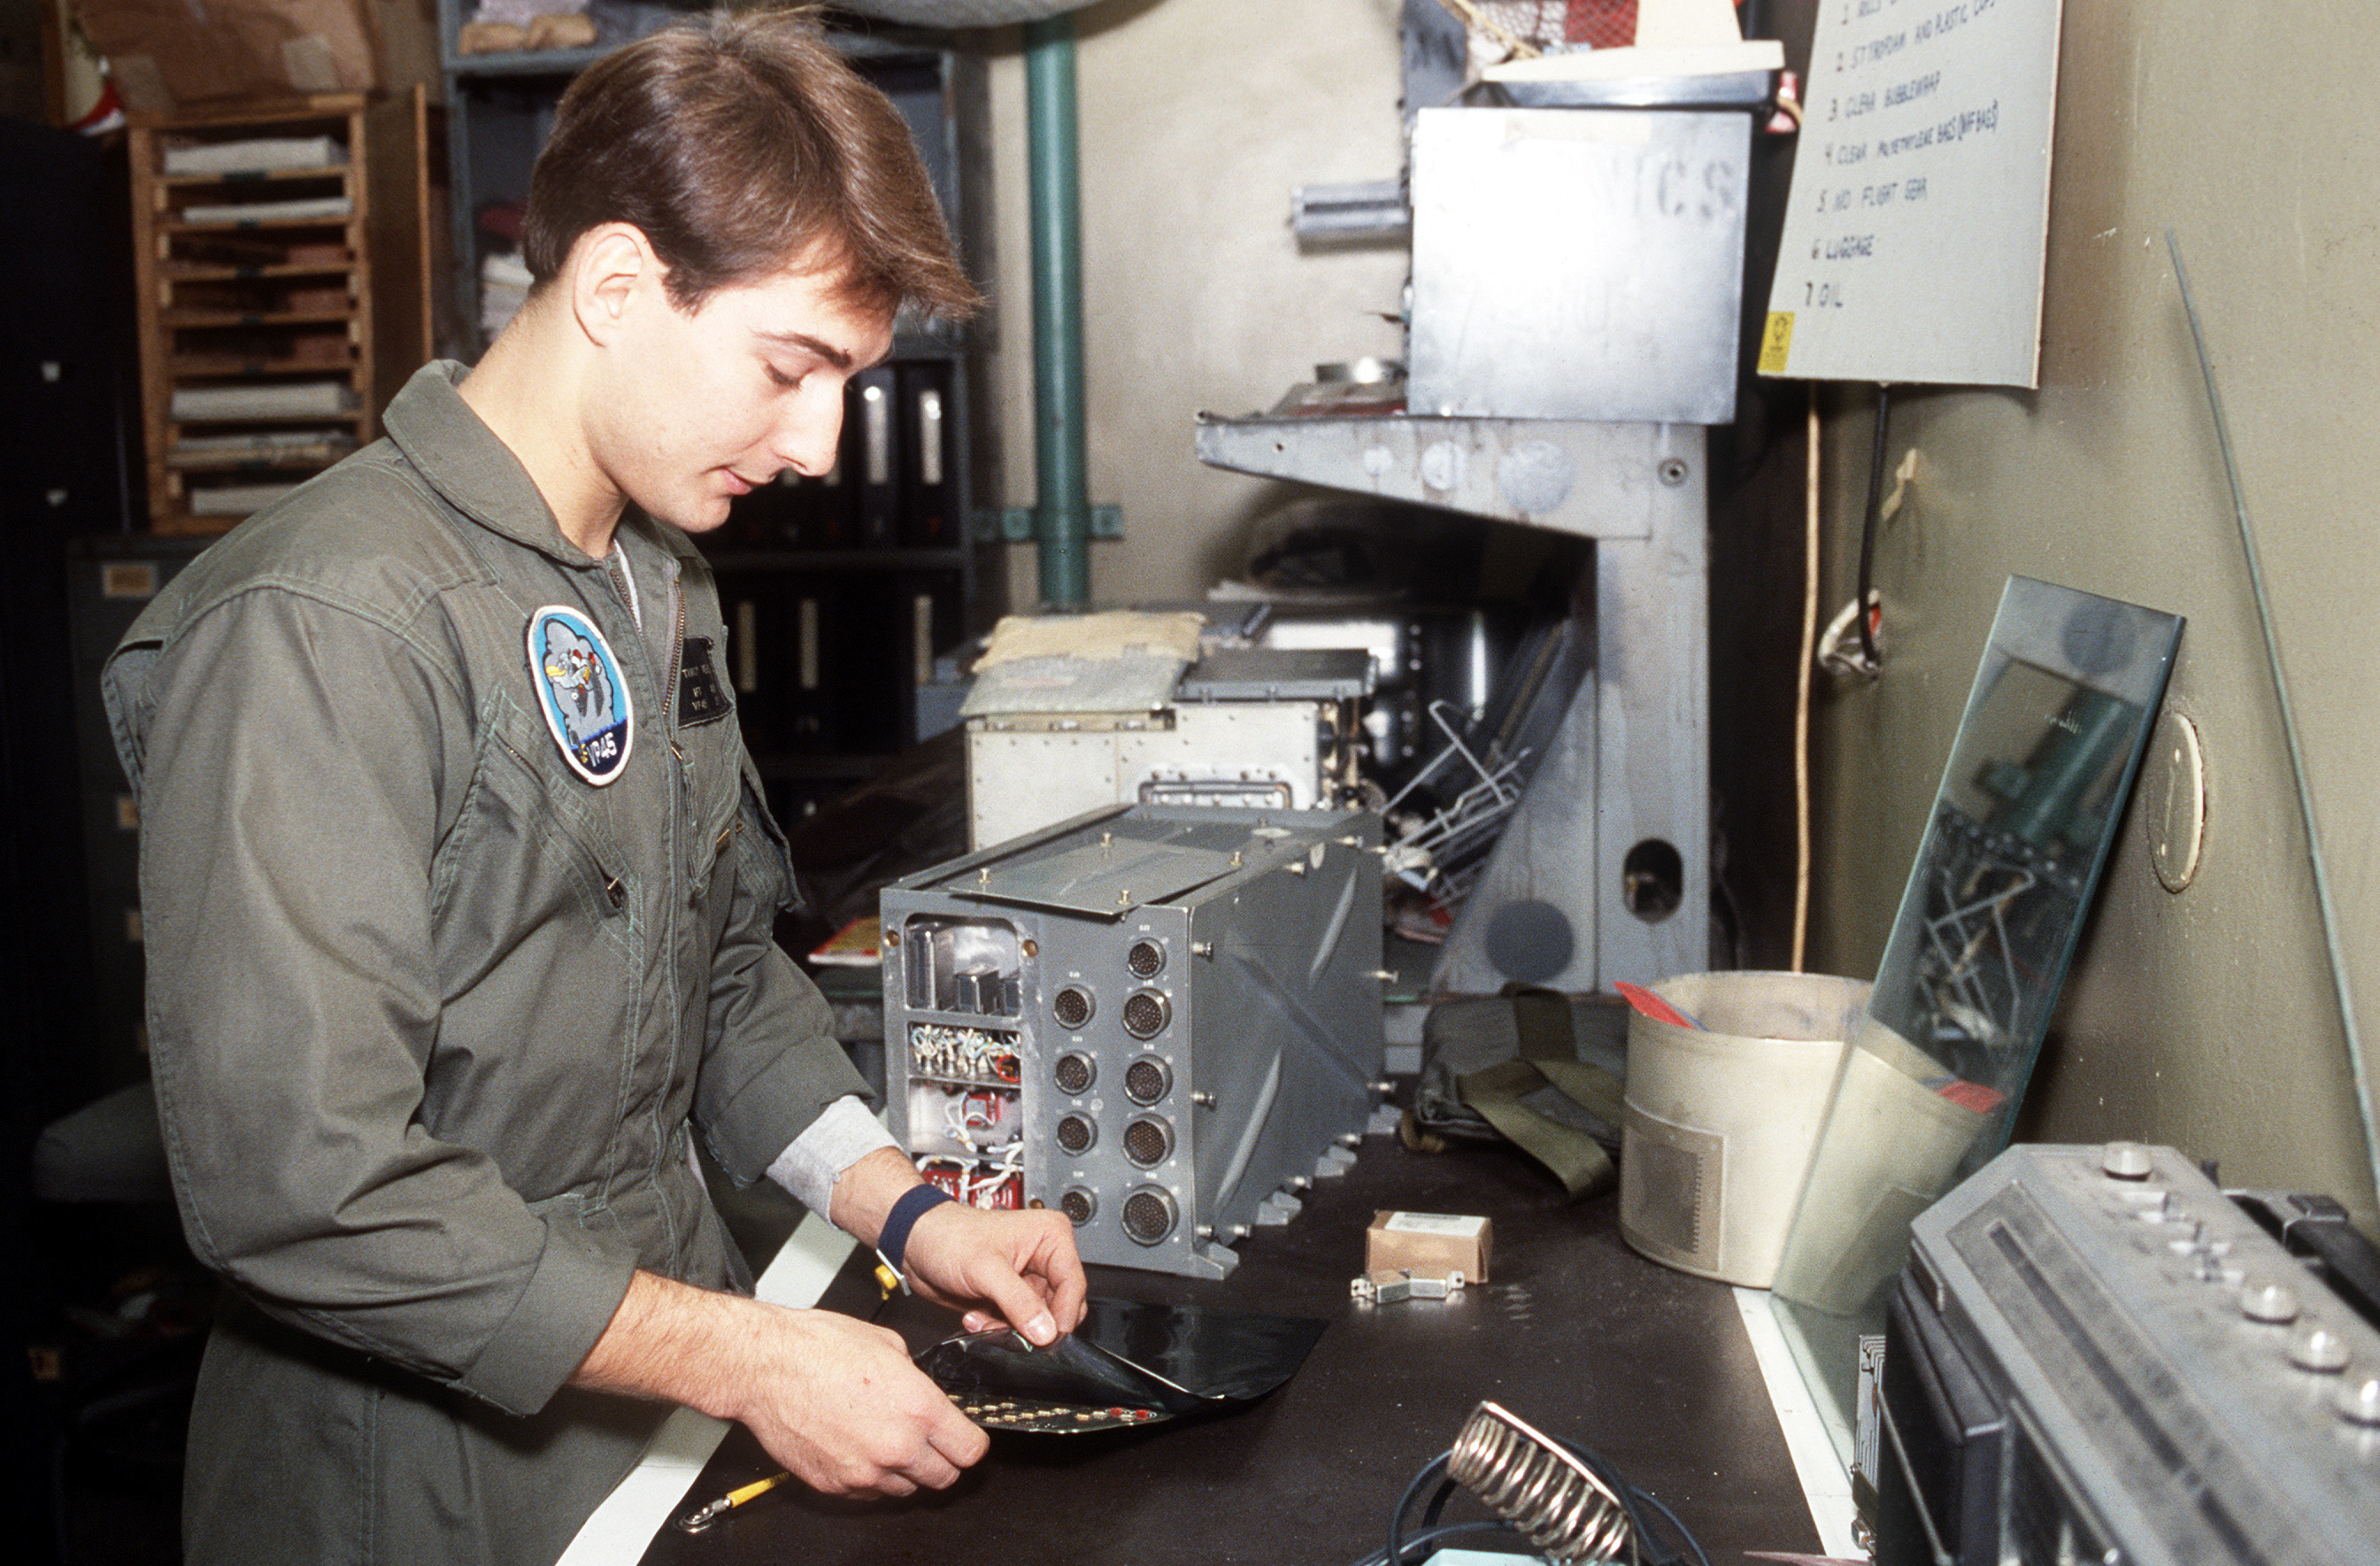 Anti-submarine Warfare Technician 3rd Class Timothy A. Veres, Patrol Squadron 45 (VP-45), packages a damaged circuit for shipment